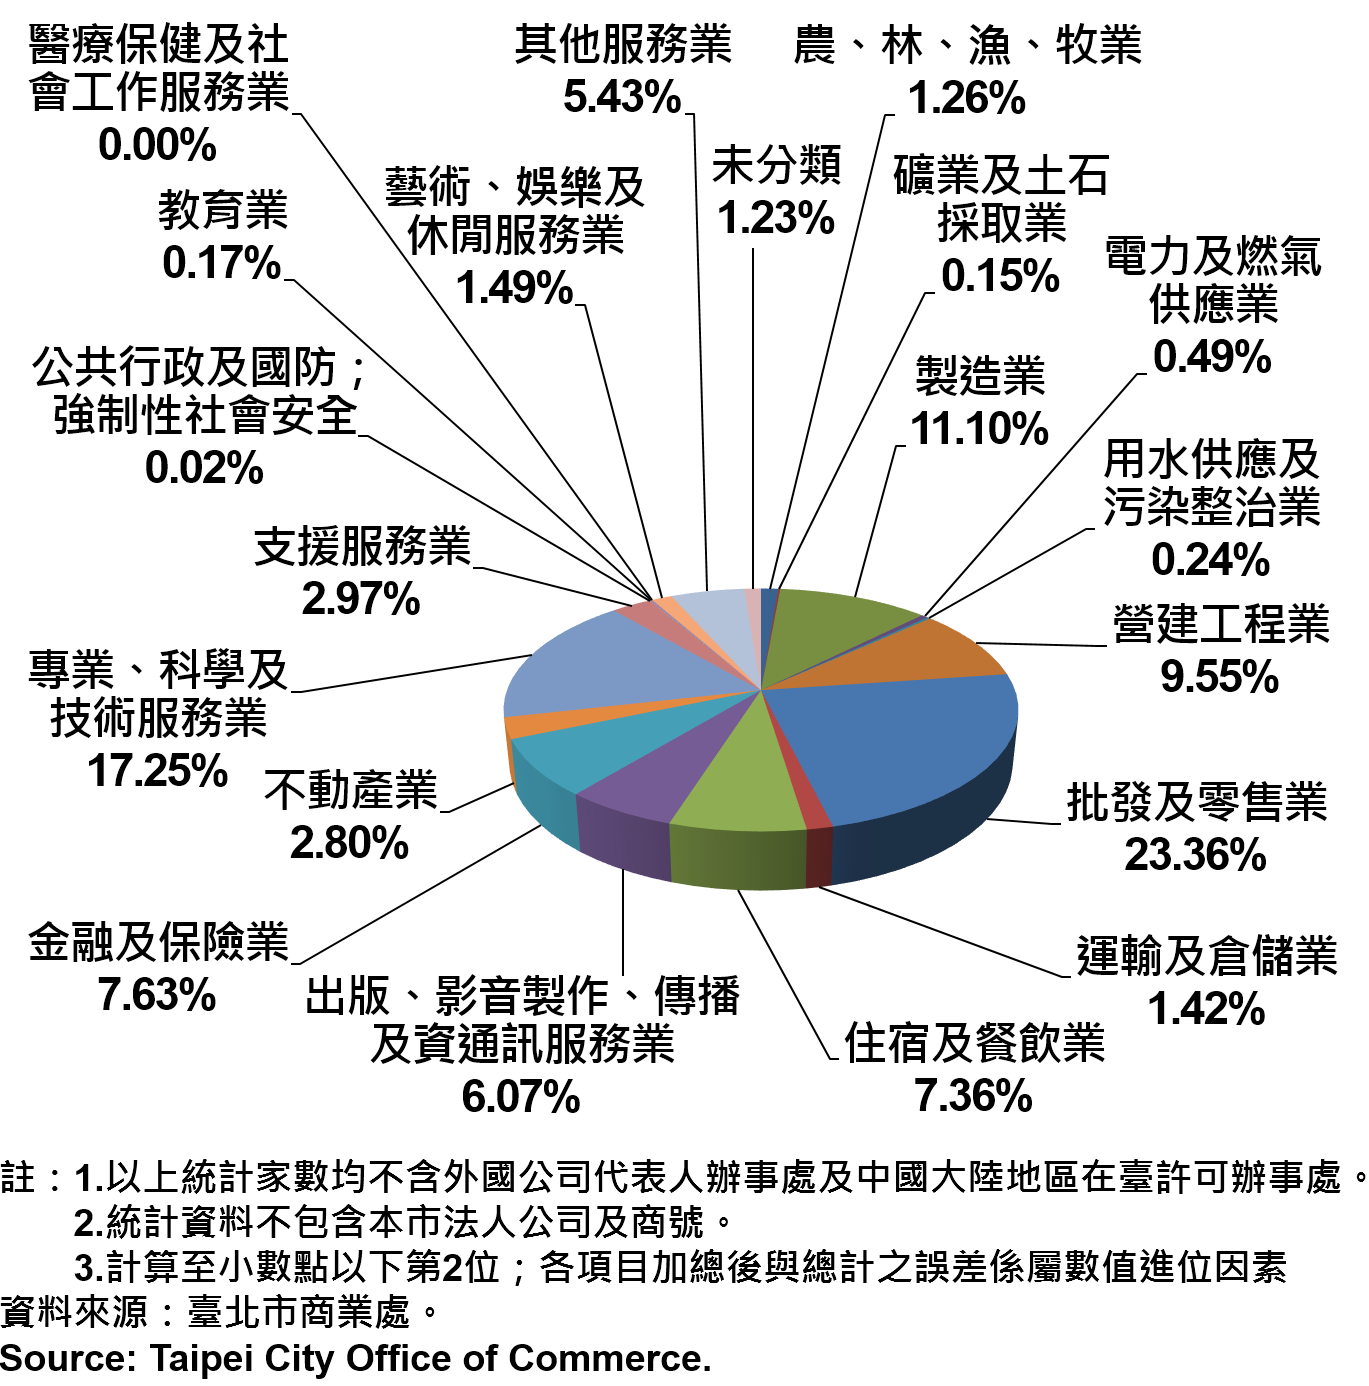 臺北市新創公司行號之業別分布情形—依現存家數—2018Q3 Newly Registered Companies in Taipei City by Industry- Number of Current—2018Q3